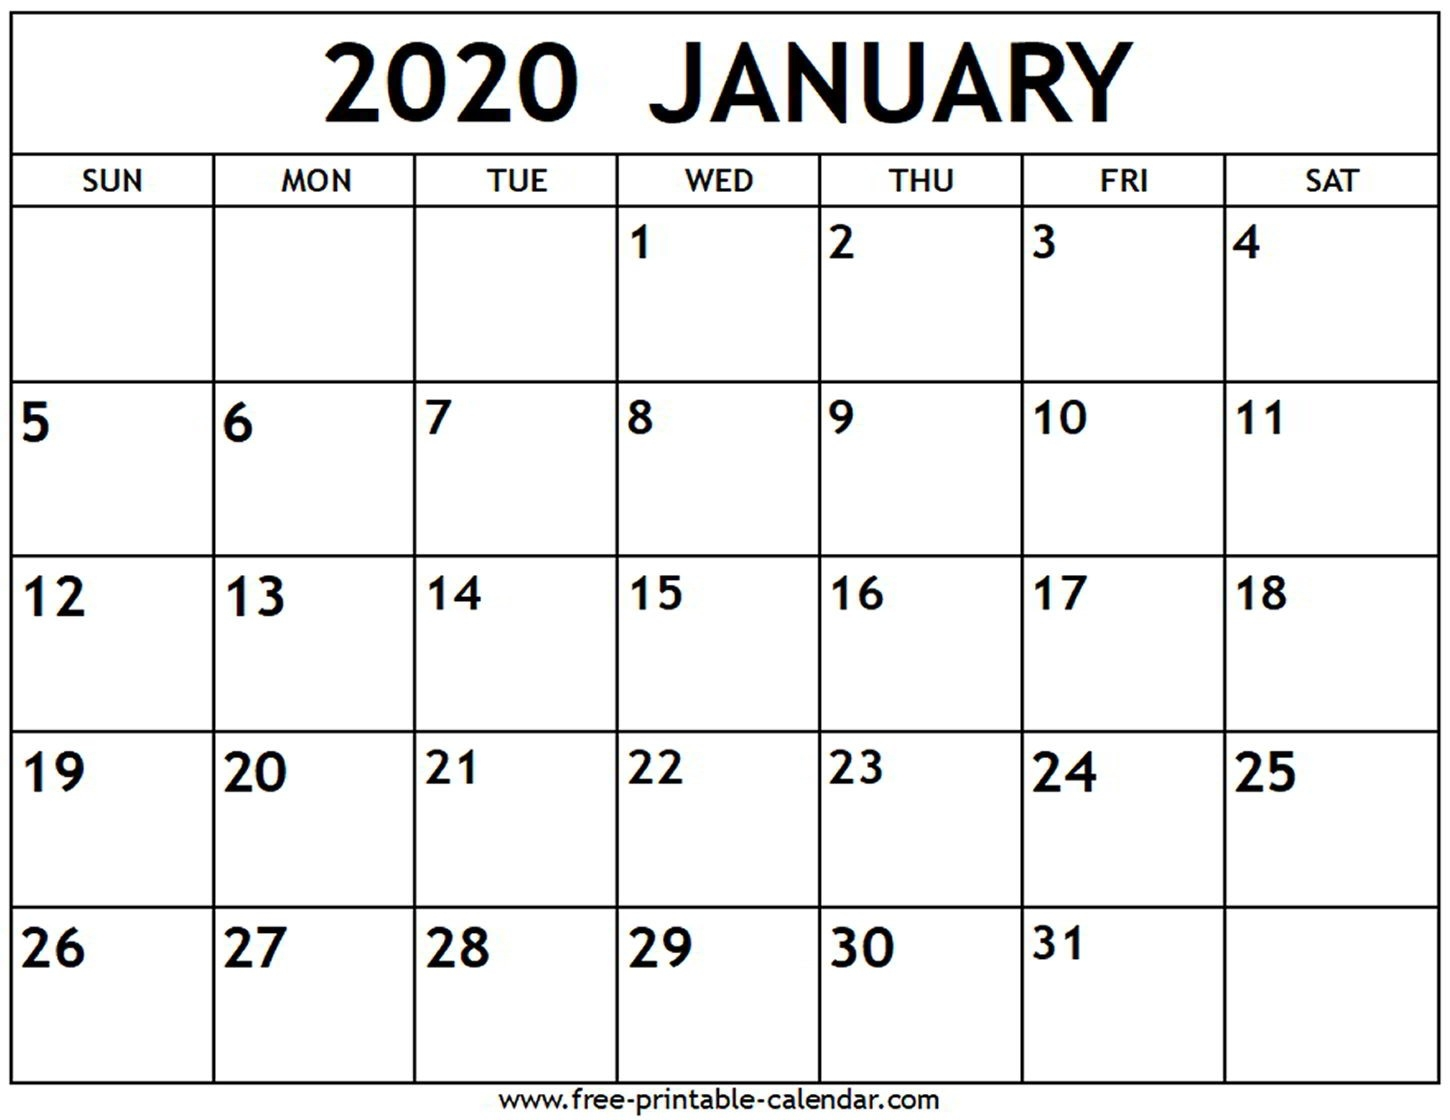 January 2020 Calendar - Free-Printable-Calendar-January 2020 Calendar Portrait